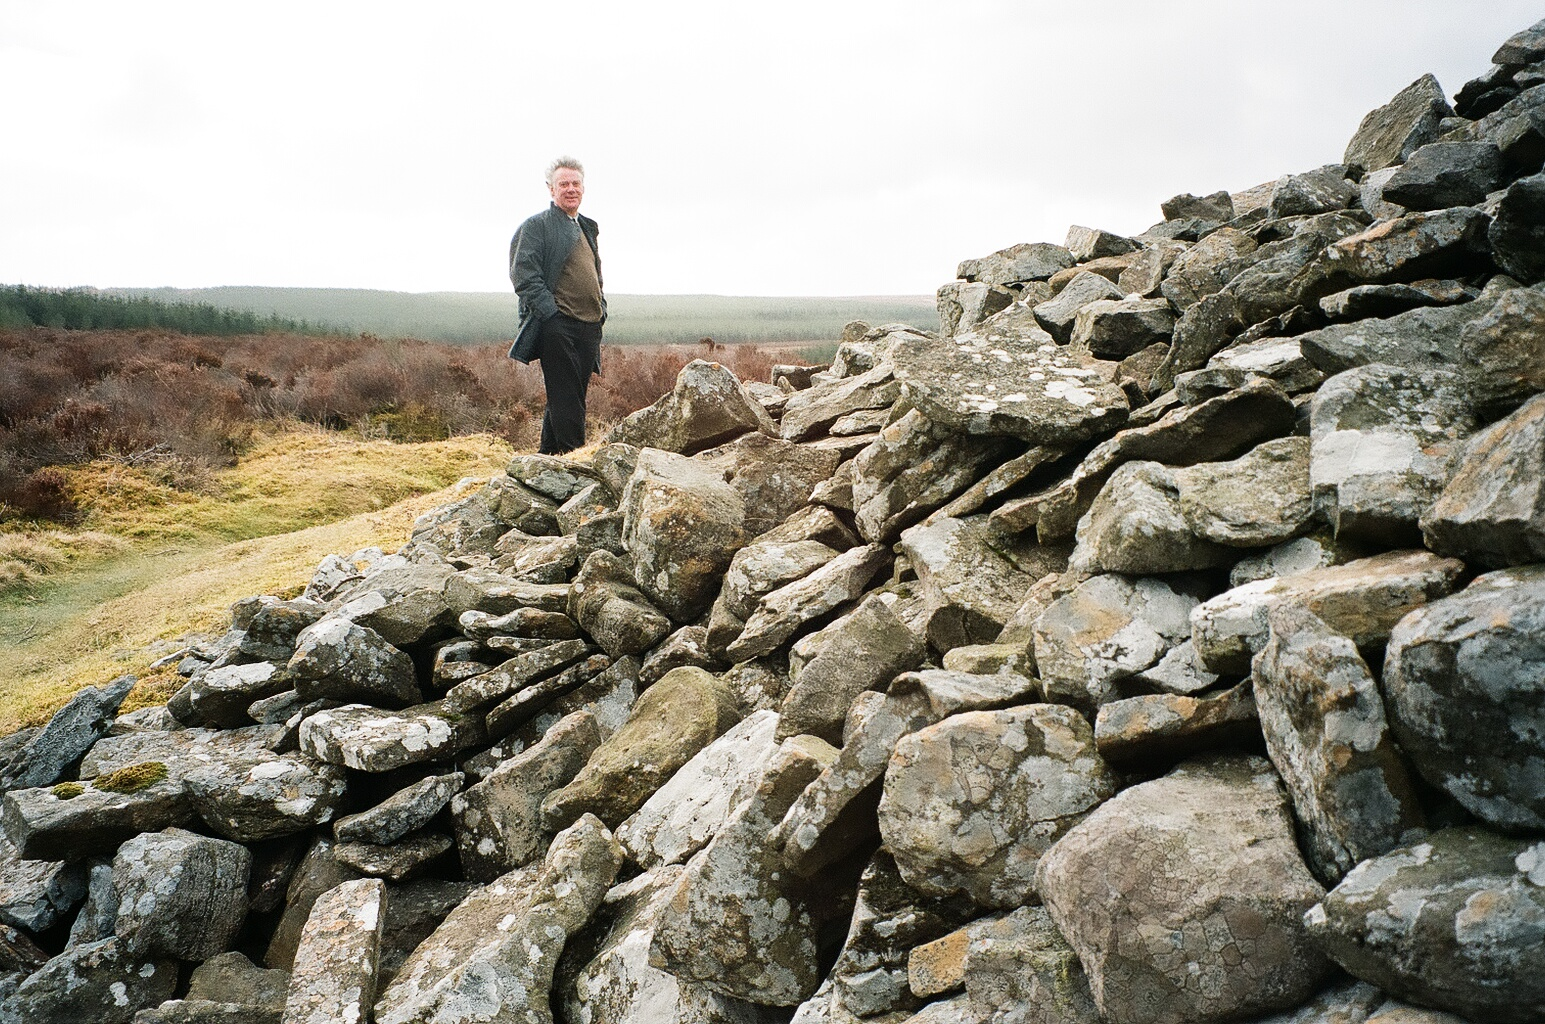 The Grey Cairns of Camster date from 3800 B.C. These 200-foot long chambered tombs are the best preserved in all of Britain.